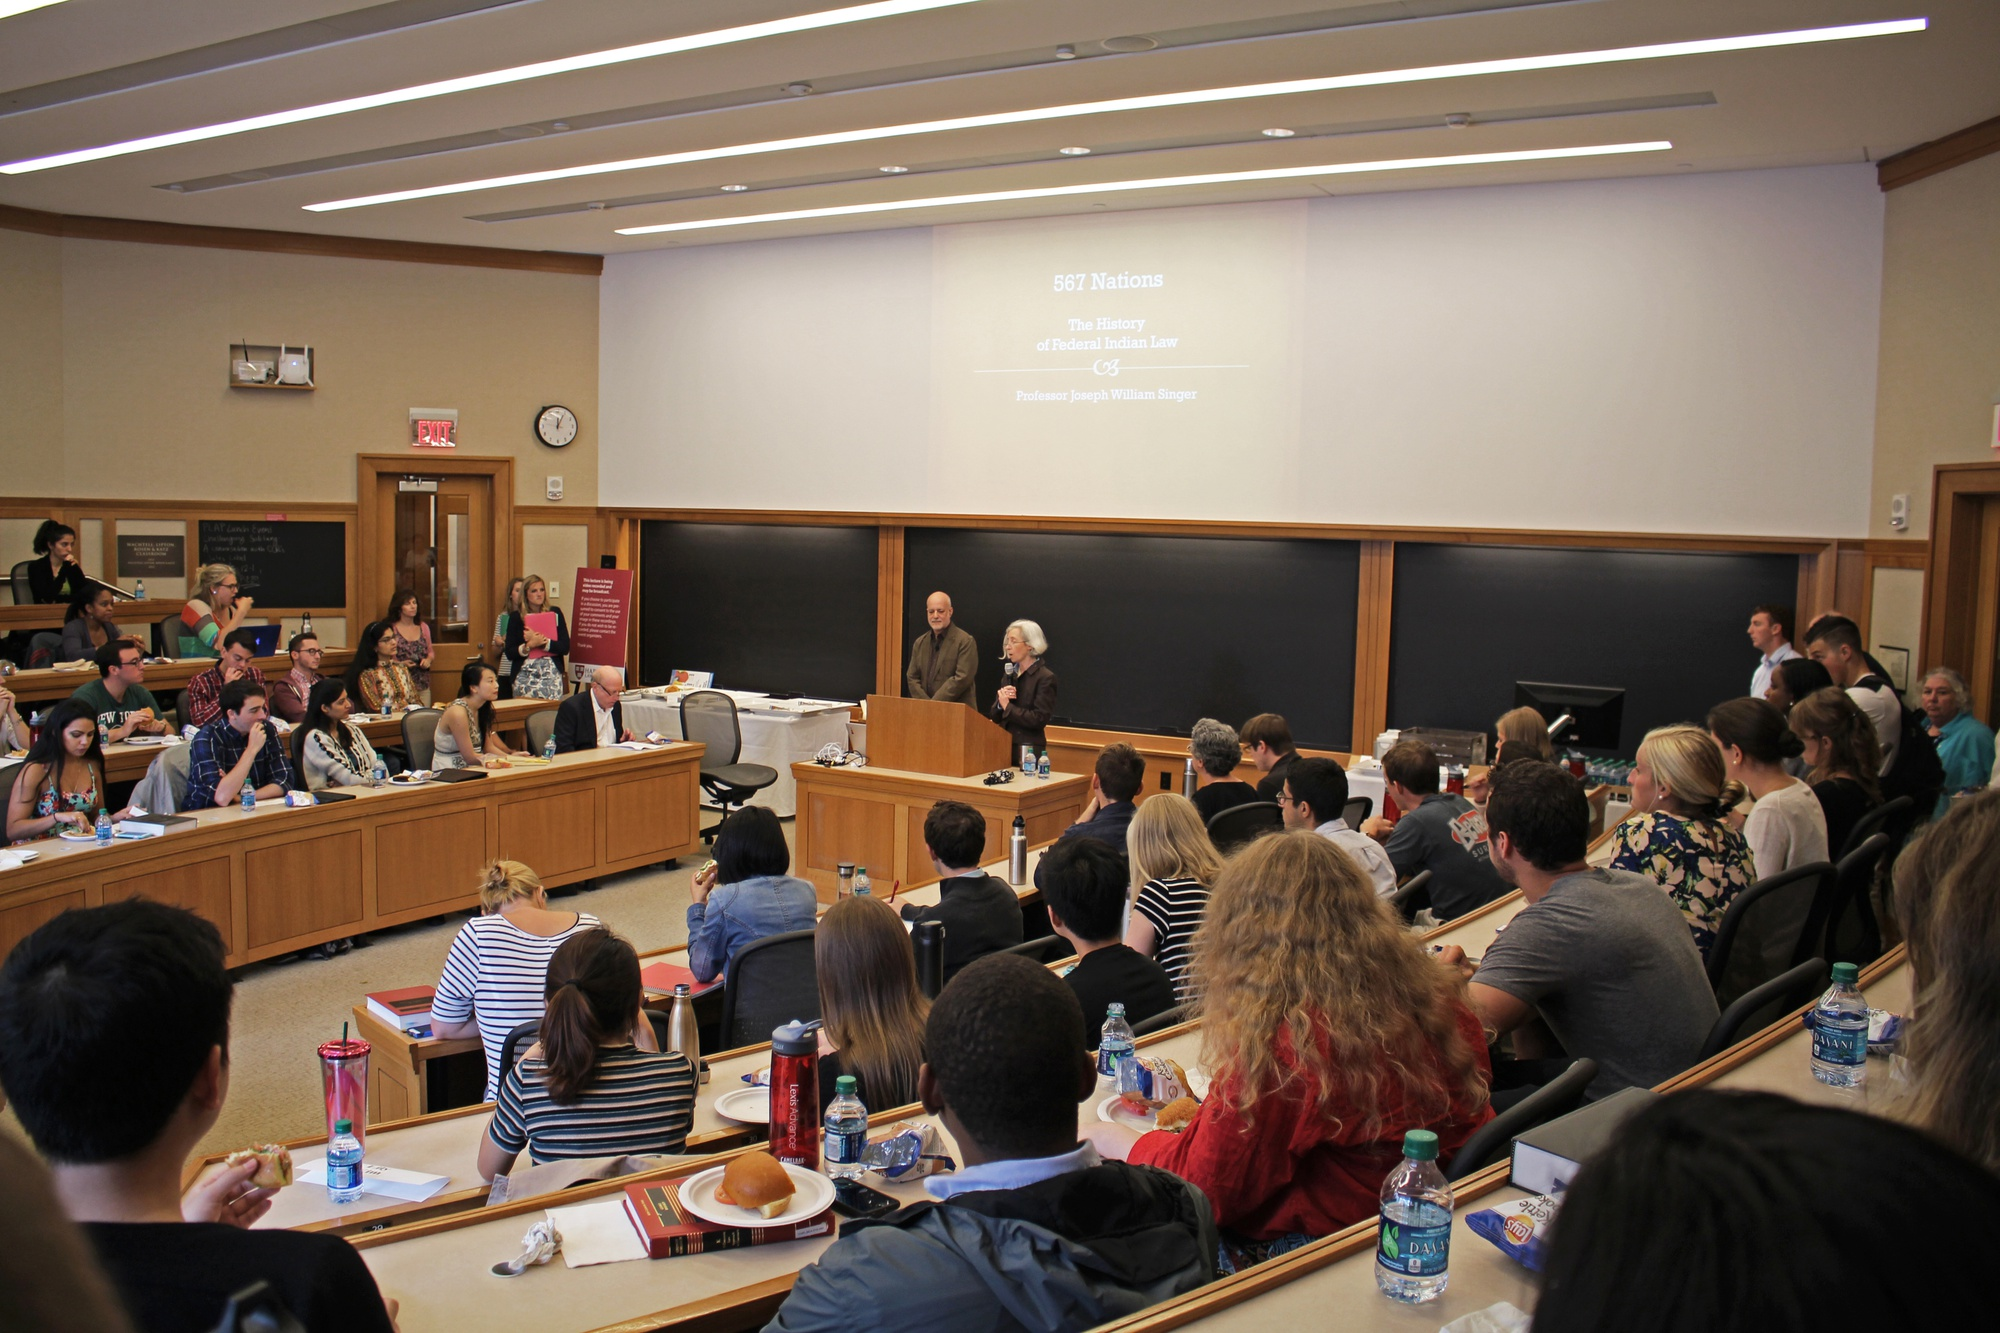 Dean Martha L. Minow invites Joseph W. Singer, Bussey Professor of Law, to give the first lecture of the Diversity and U.S. Legal History series at the Harvard Law School.